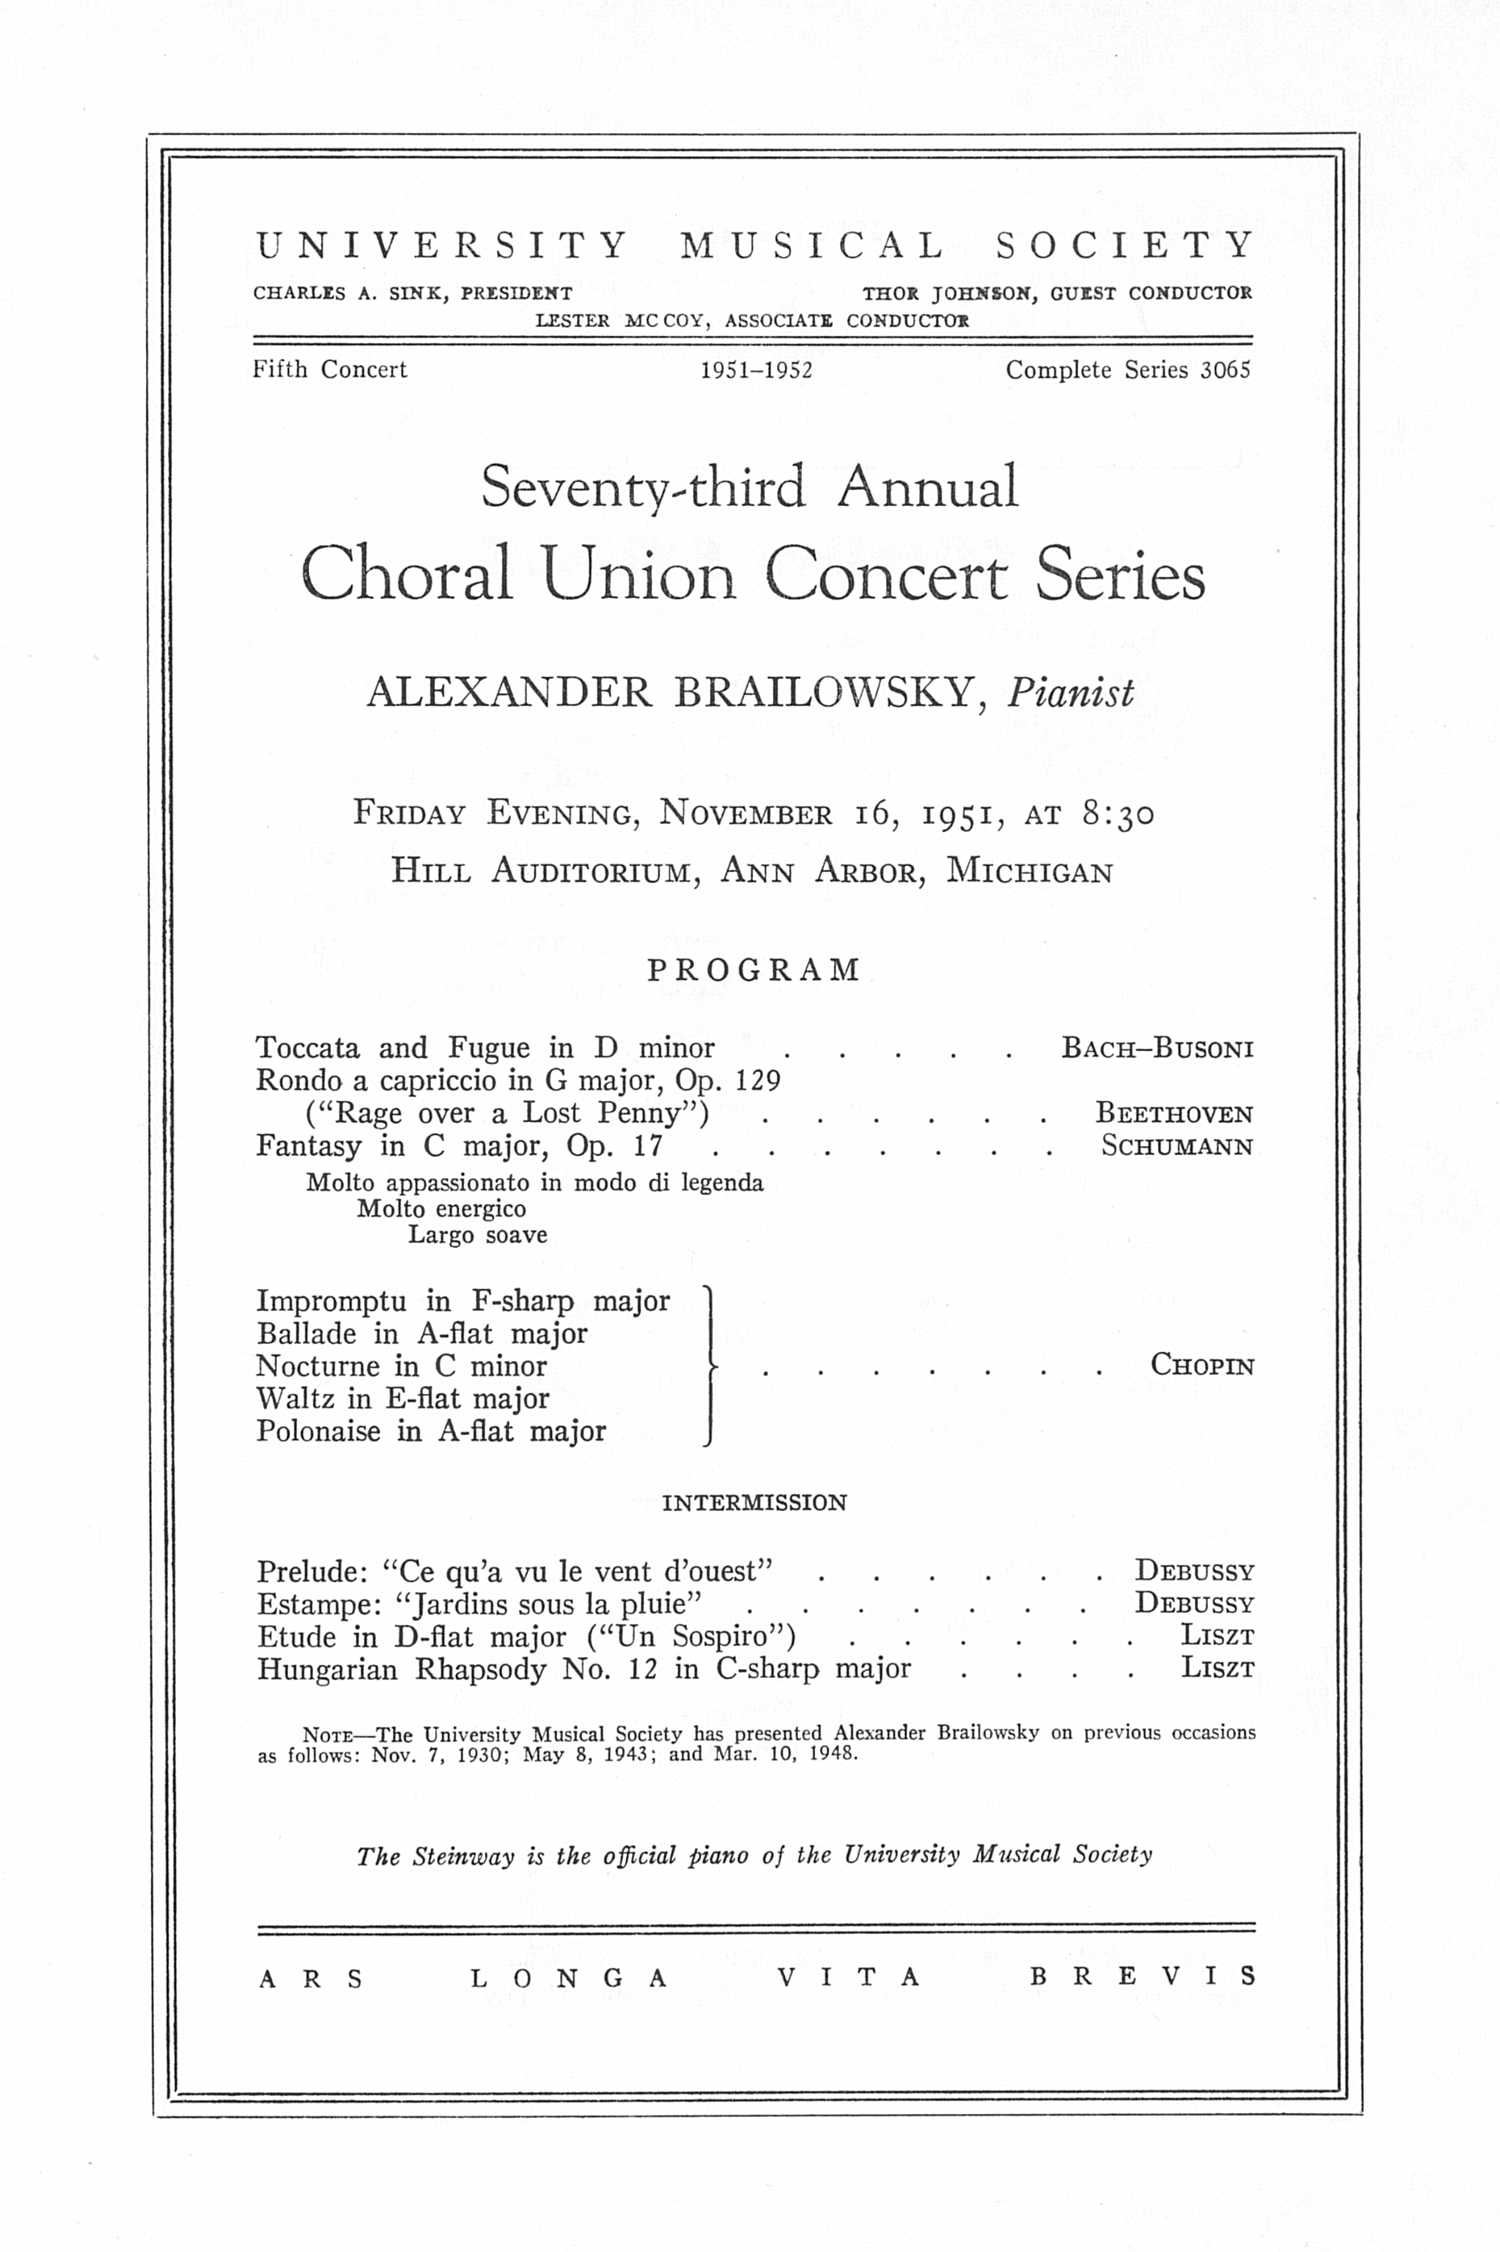 UMS Concert Program, November 16, 1951: Seventy-third Annual Choral Union Concert Series -- Alexander Brailowsky image